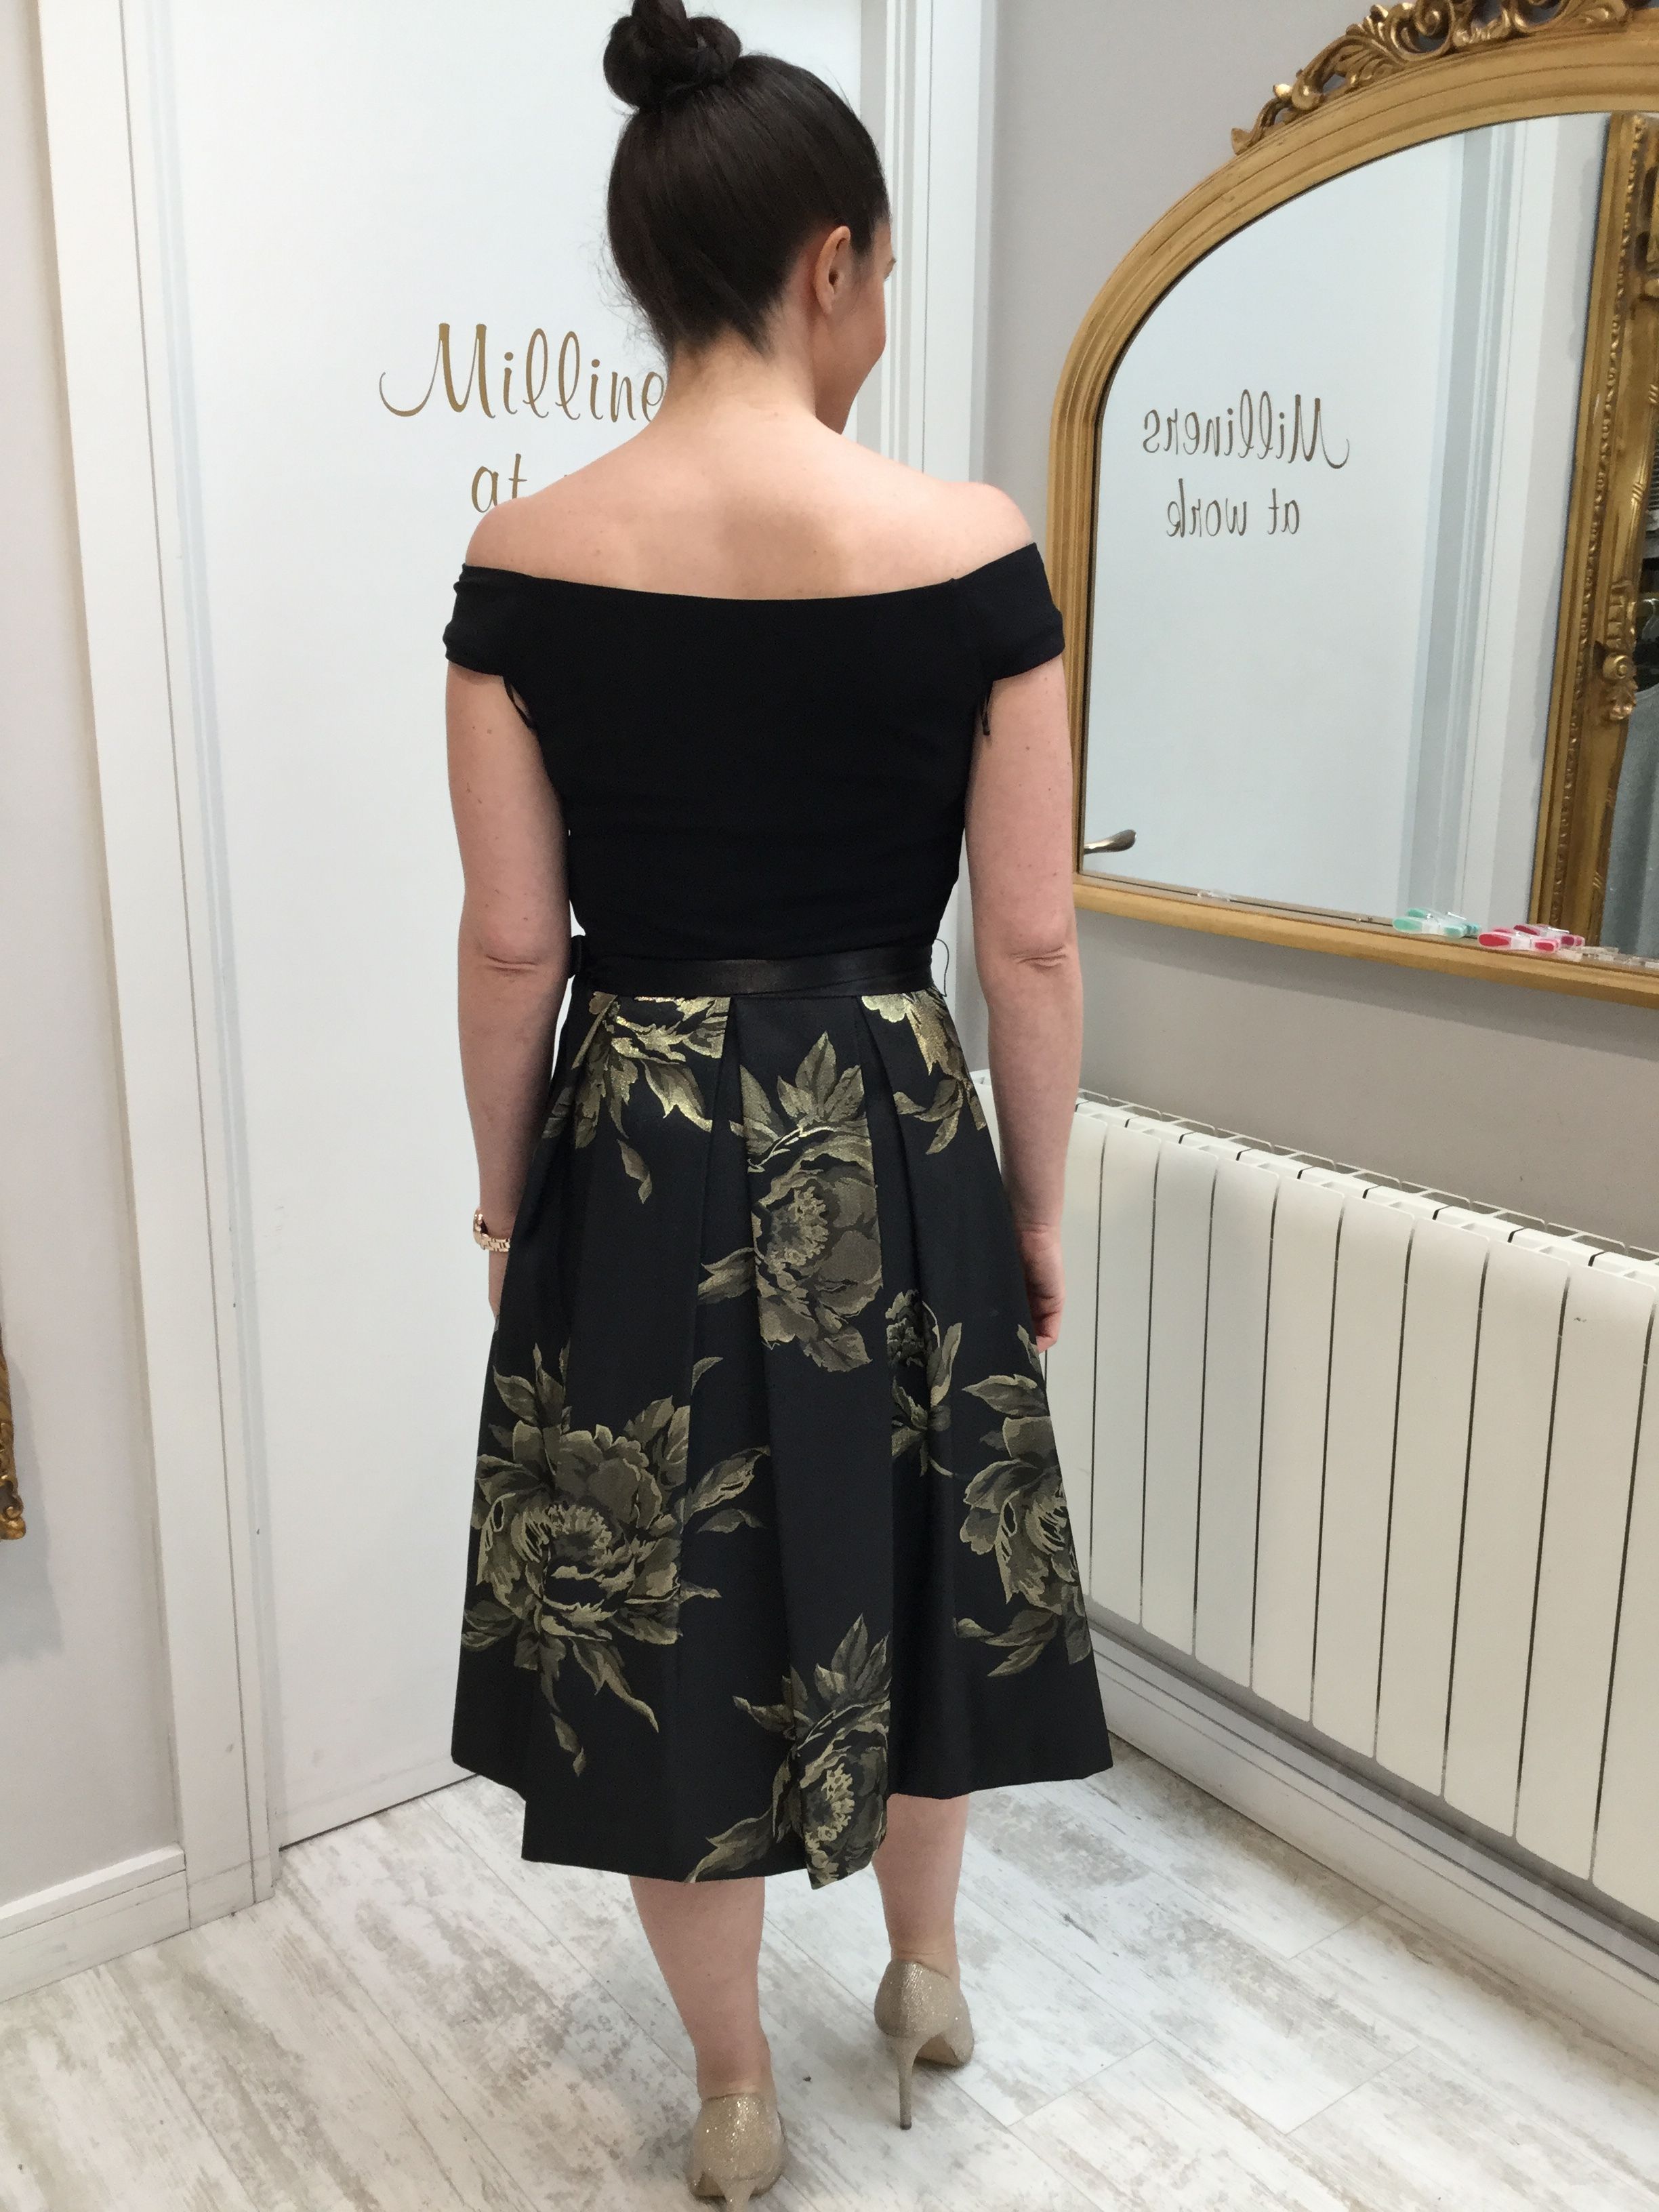 Black and Gold Dress with Full Skirt